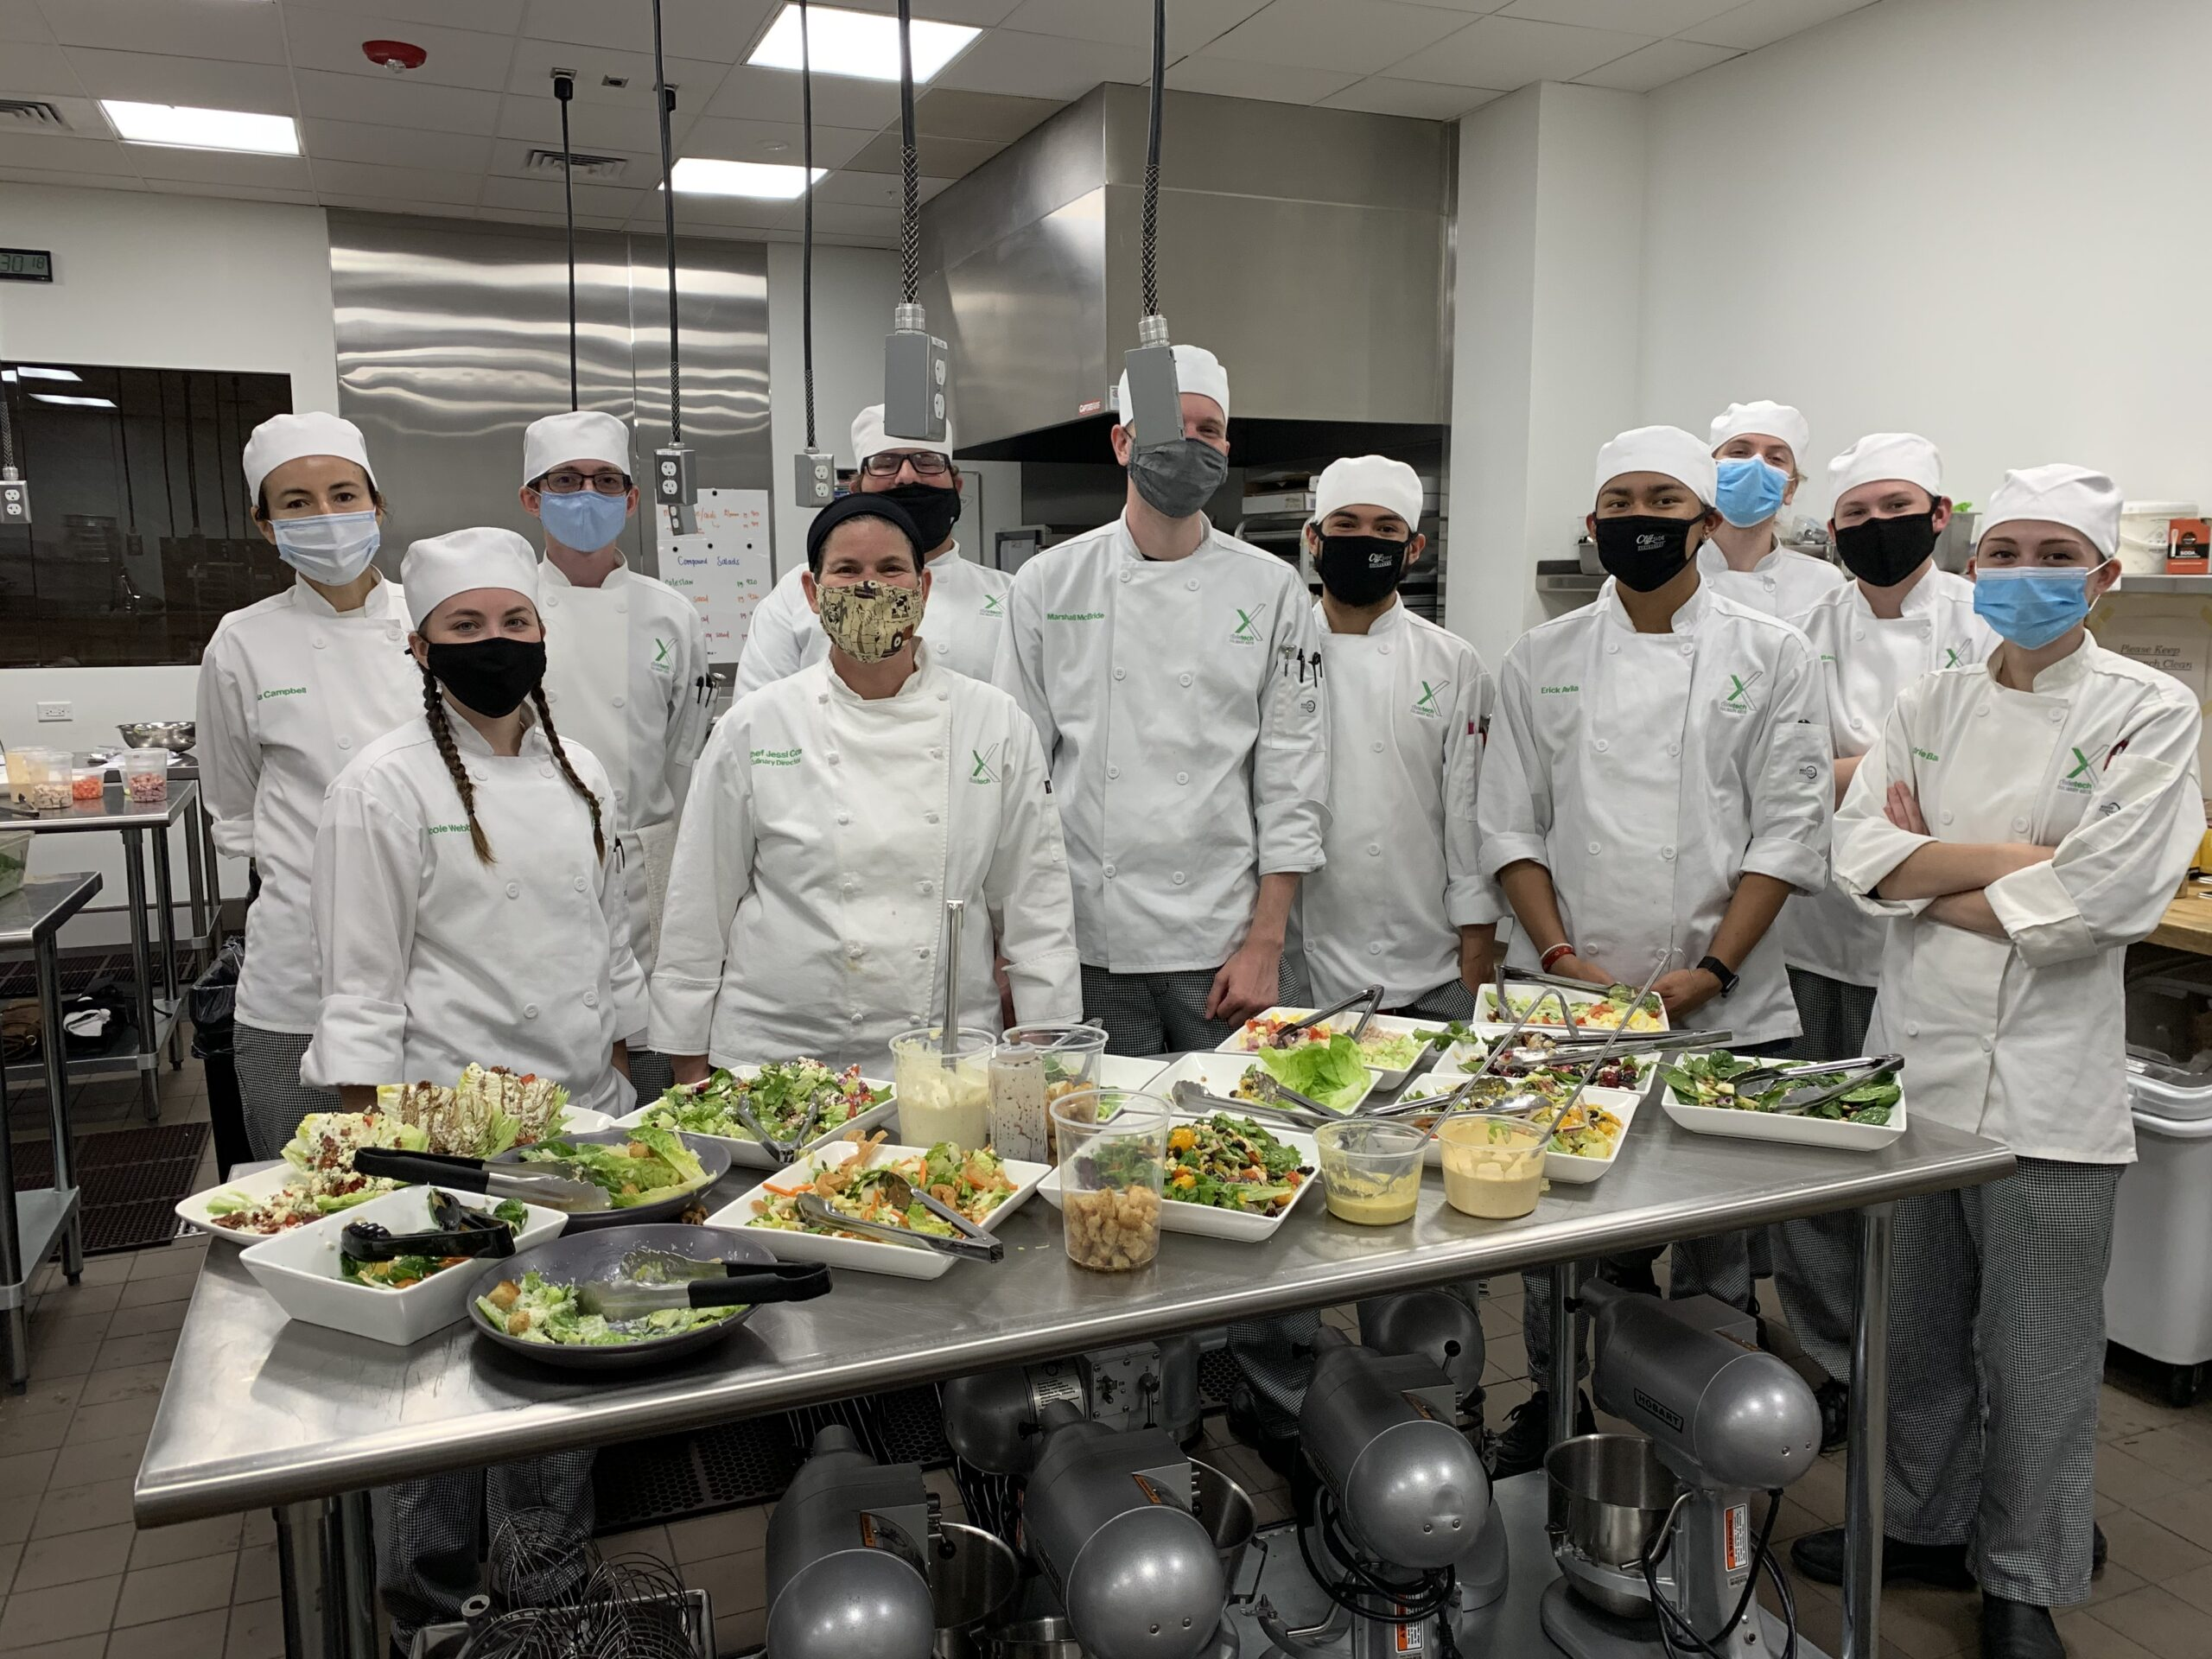 Want a career in Culinary Arts?